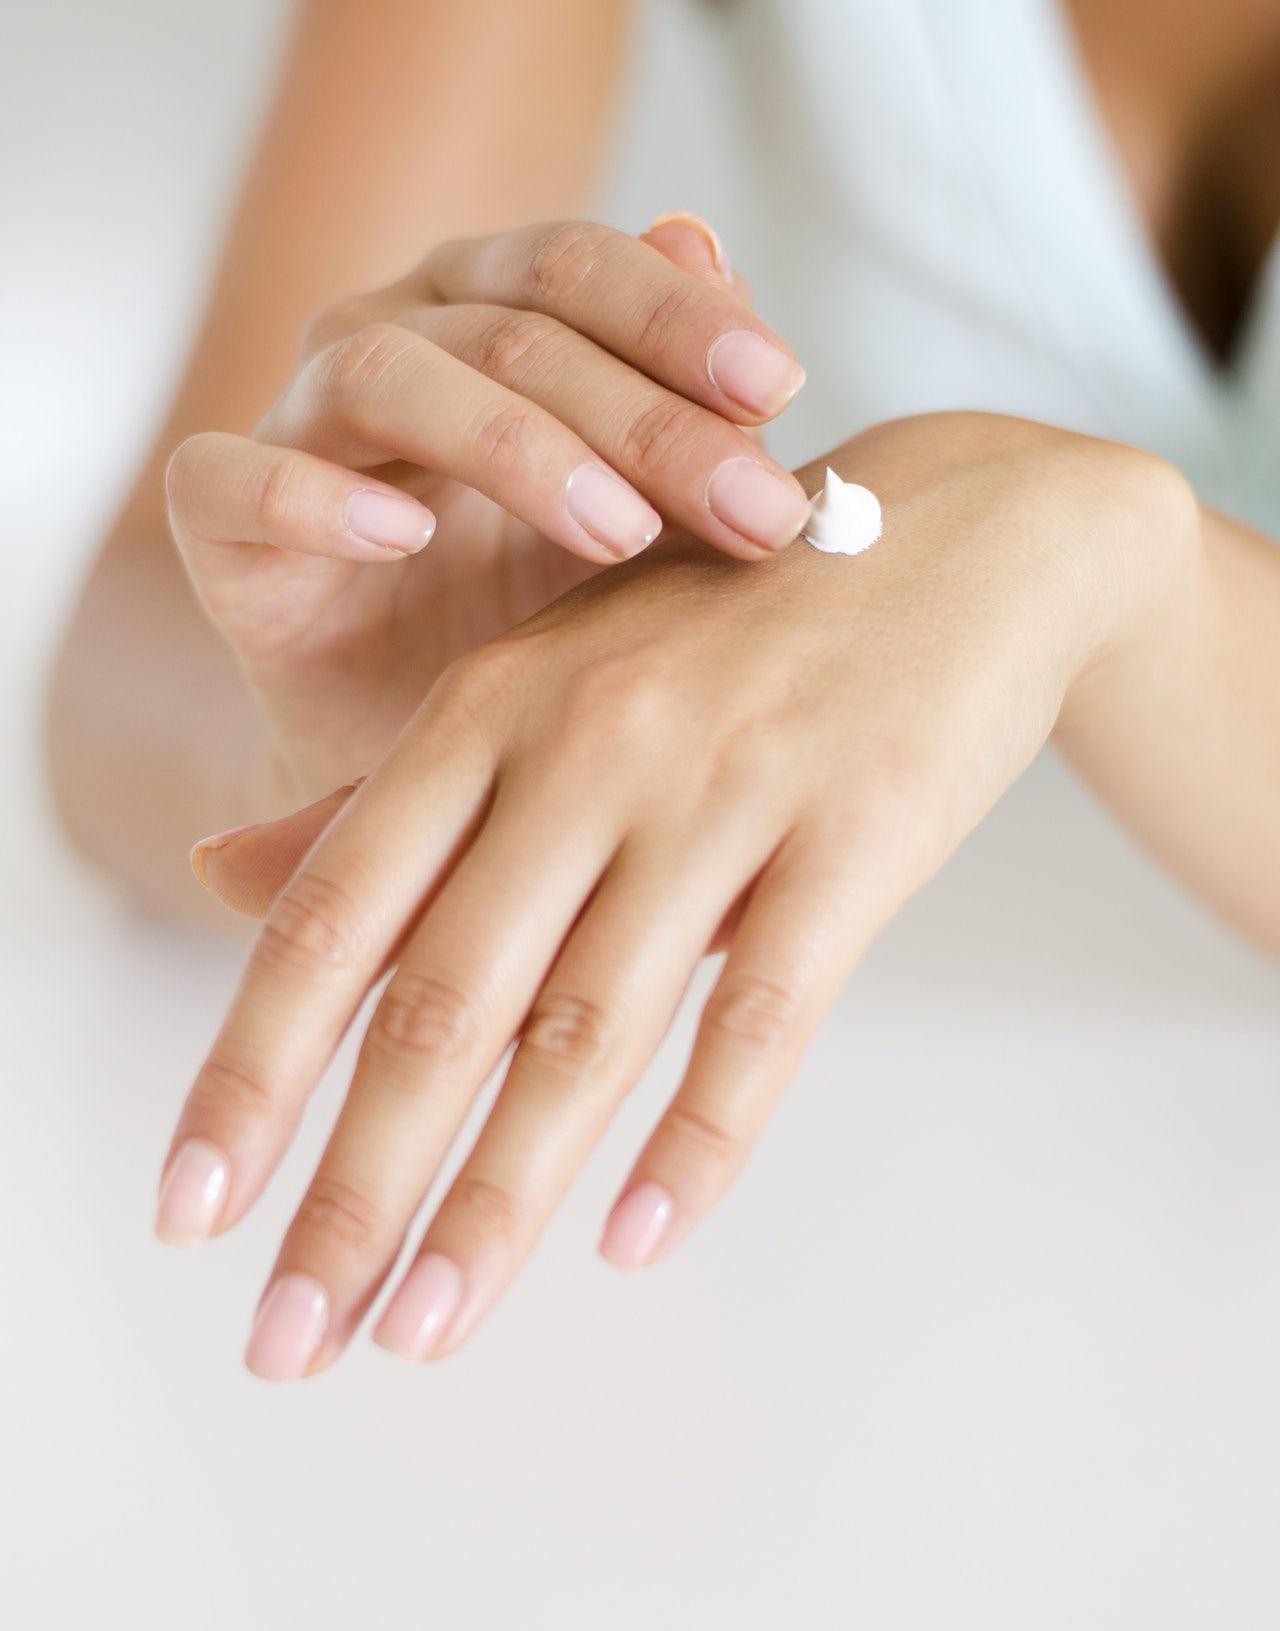 Lotion on hands